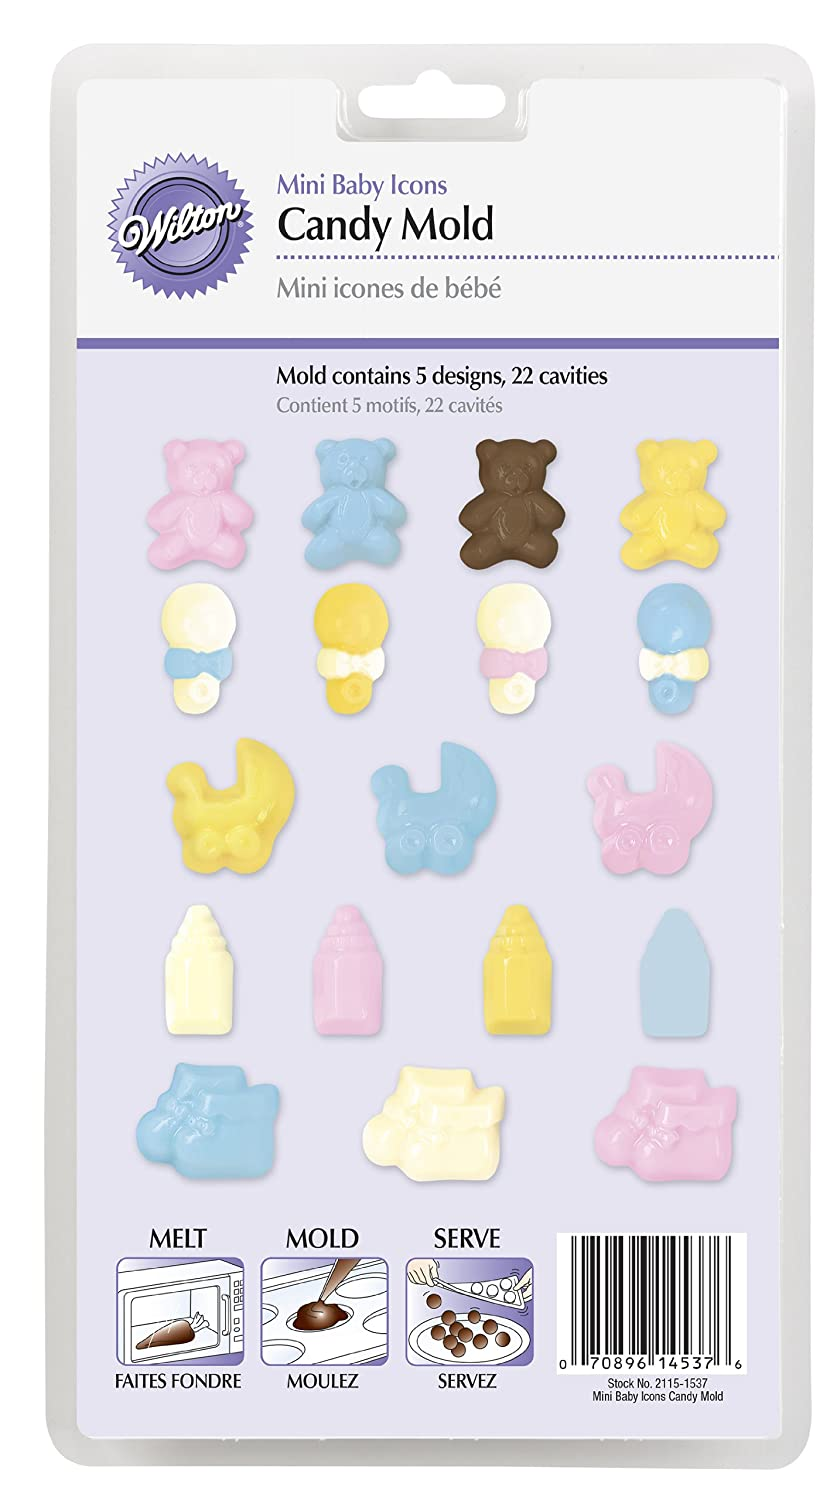 Amazon.com: Wilton 2115-1537 Candy Molds, Mini Baby: Candy Making Molds: Kitchen & Dining